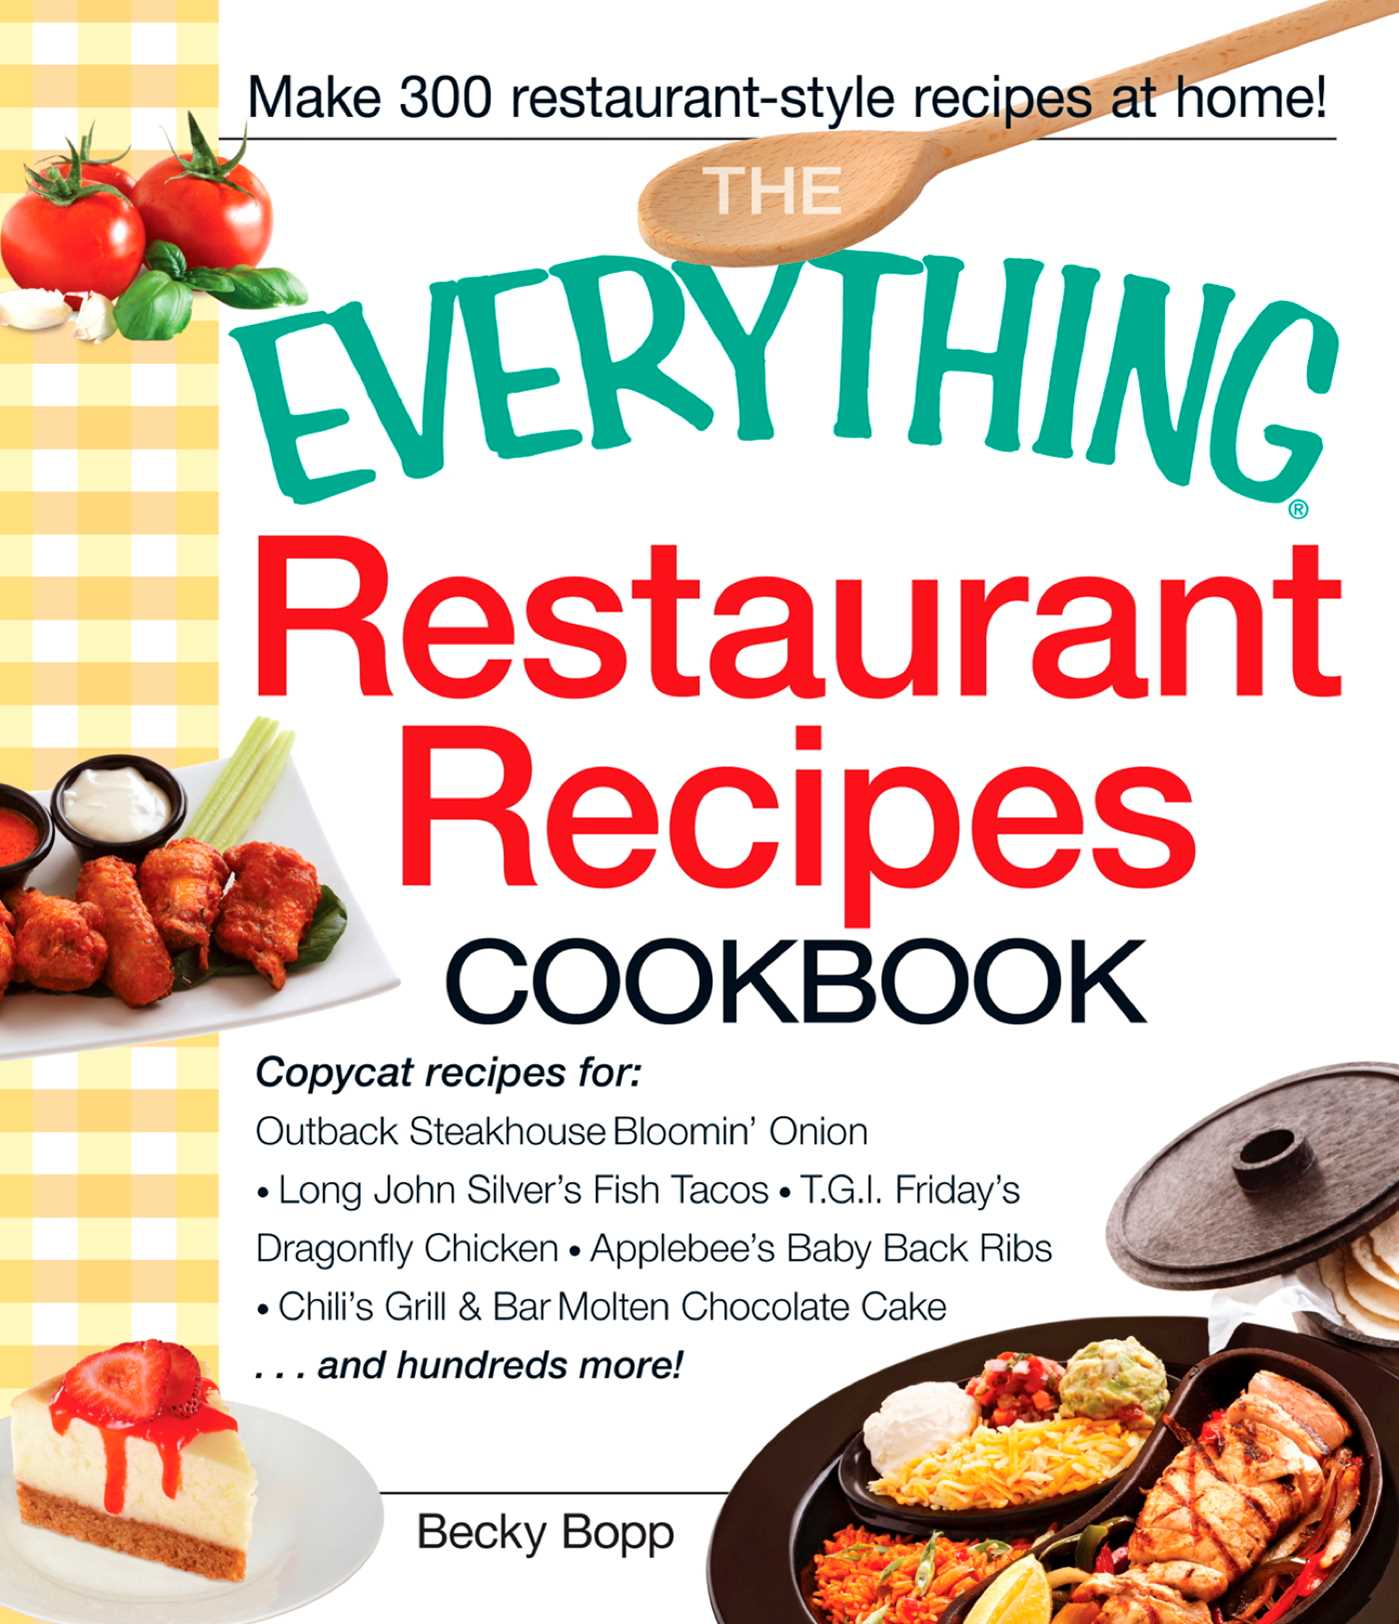 The everything restaurant recipes cookbook ebook by becky bopp book cover image jpg the everything restaurant recipes cookbook forumfinder Image collections